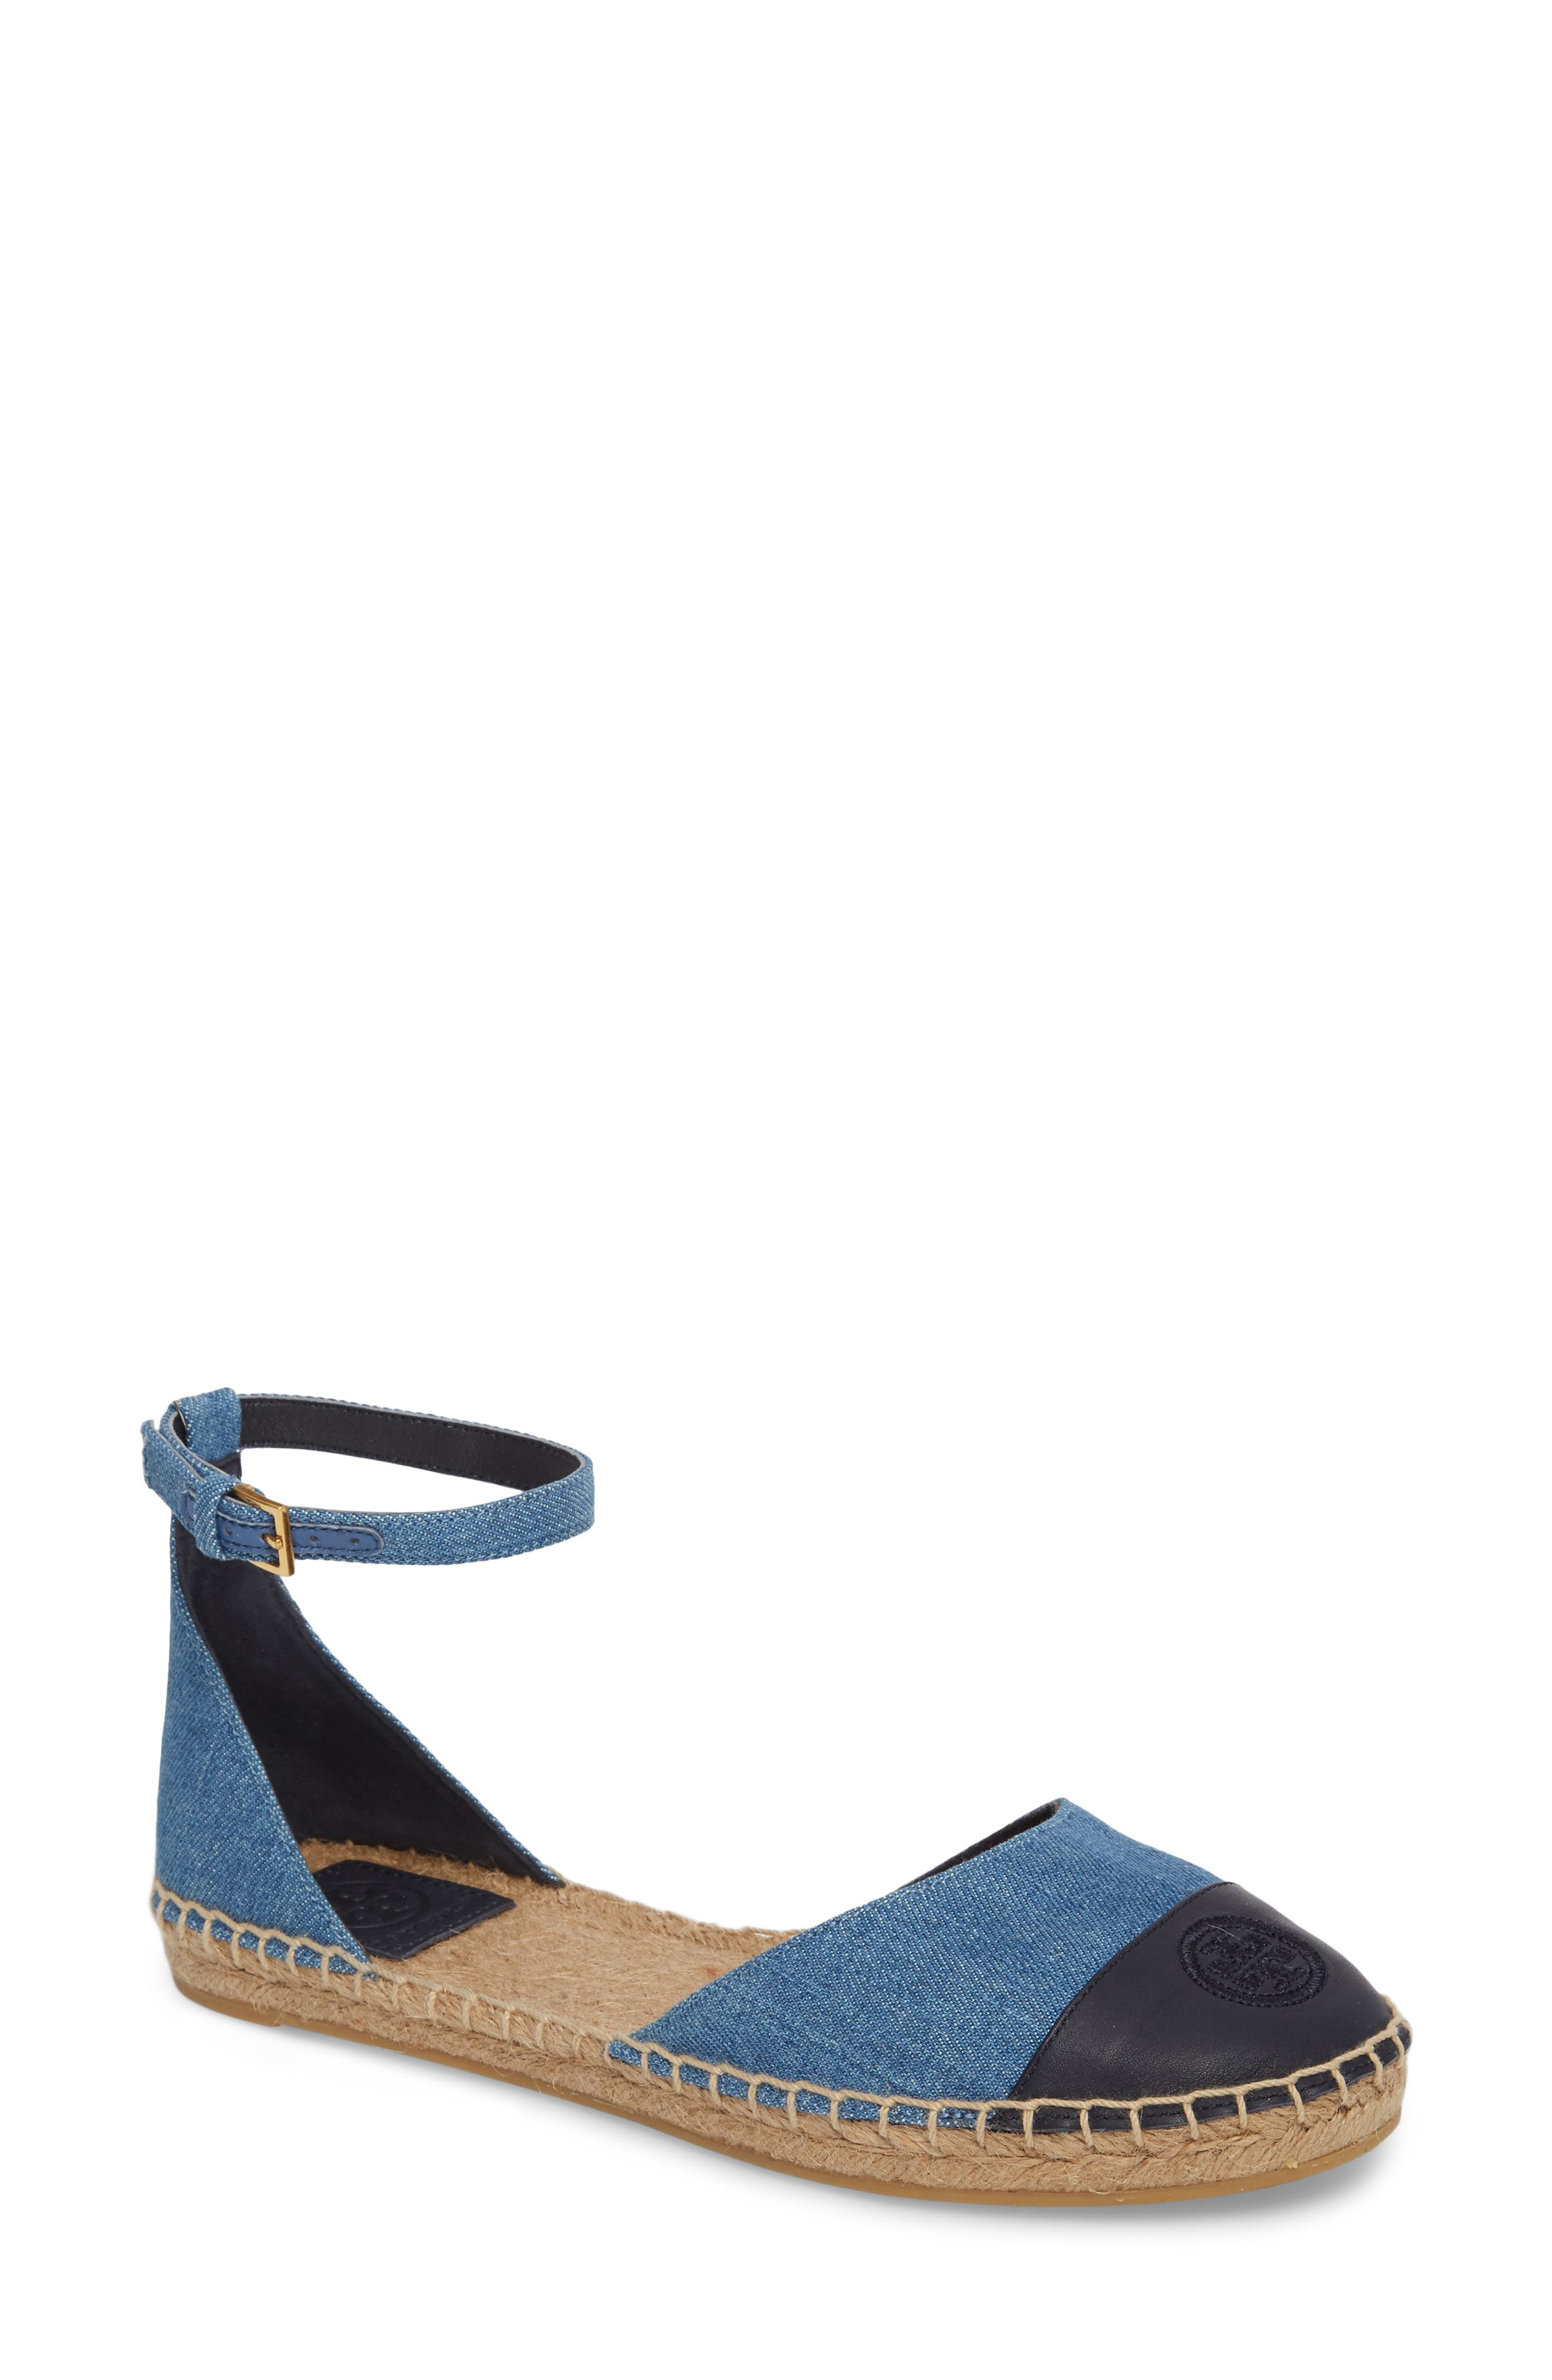 Ankle Strap Espadrille,                             Main thumbnail 1, color,                             Denim Chambray/ Perfect Navy